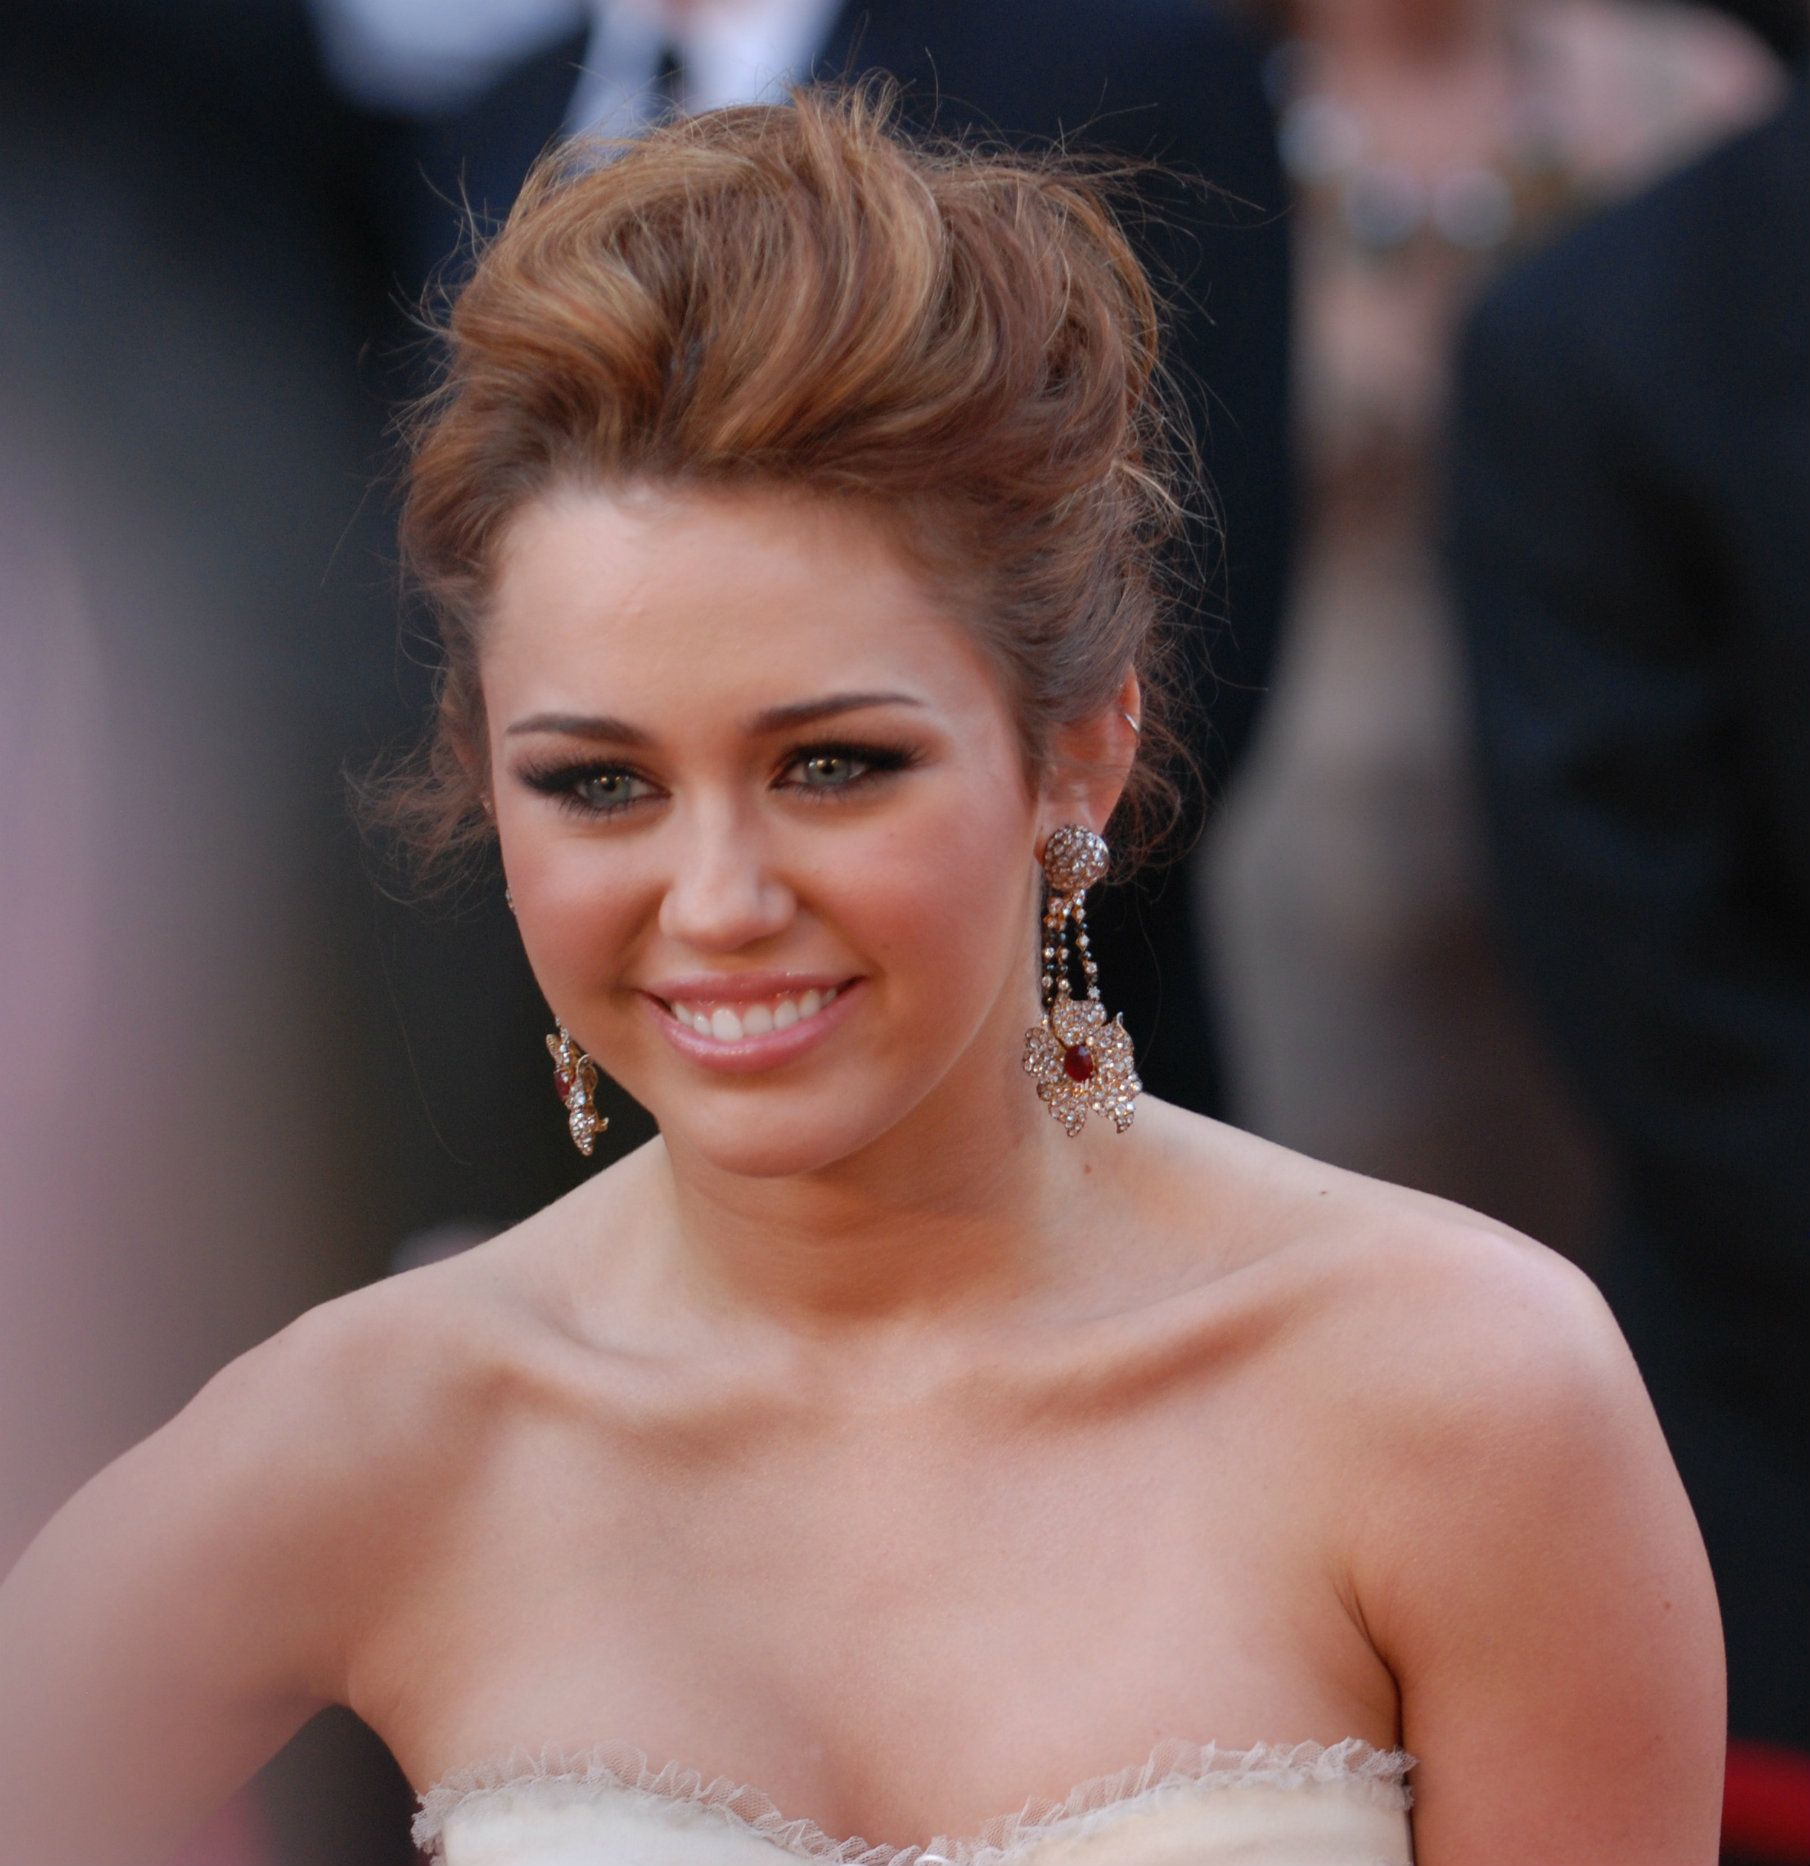 Miley_Cyrus_@_2010_Academy_Awards_(cropped)